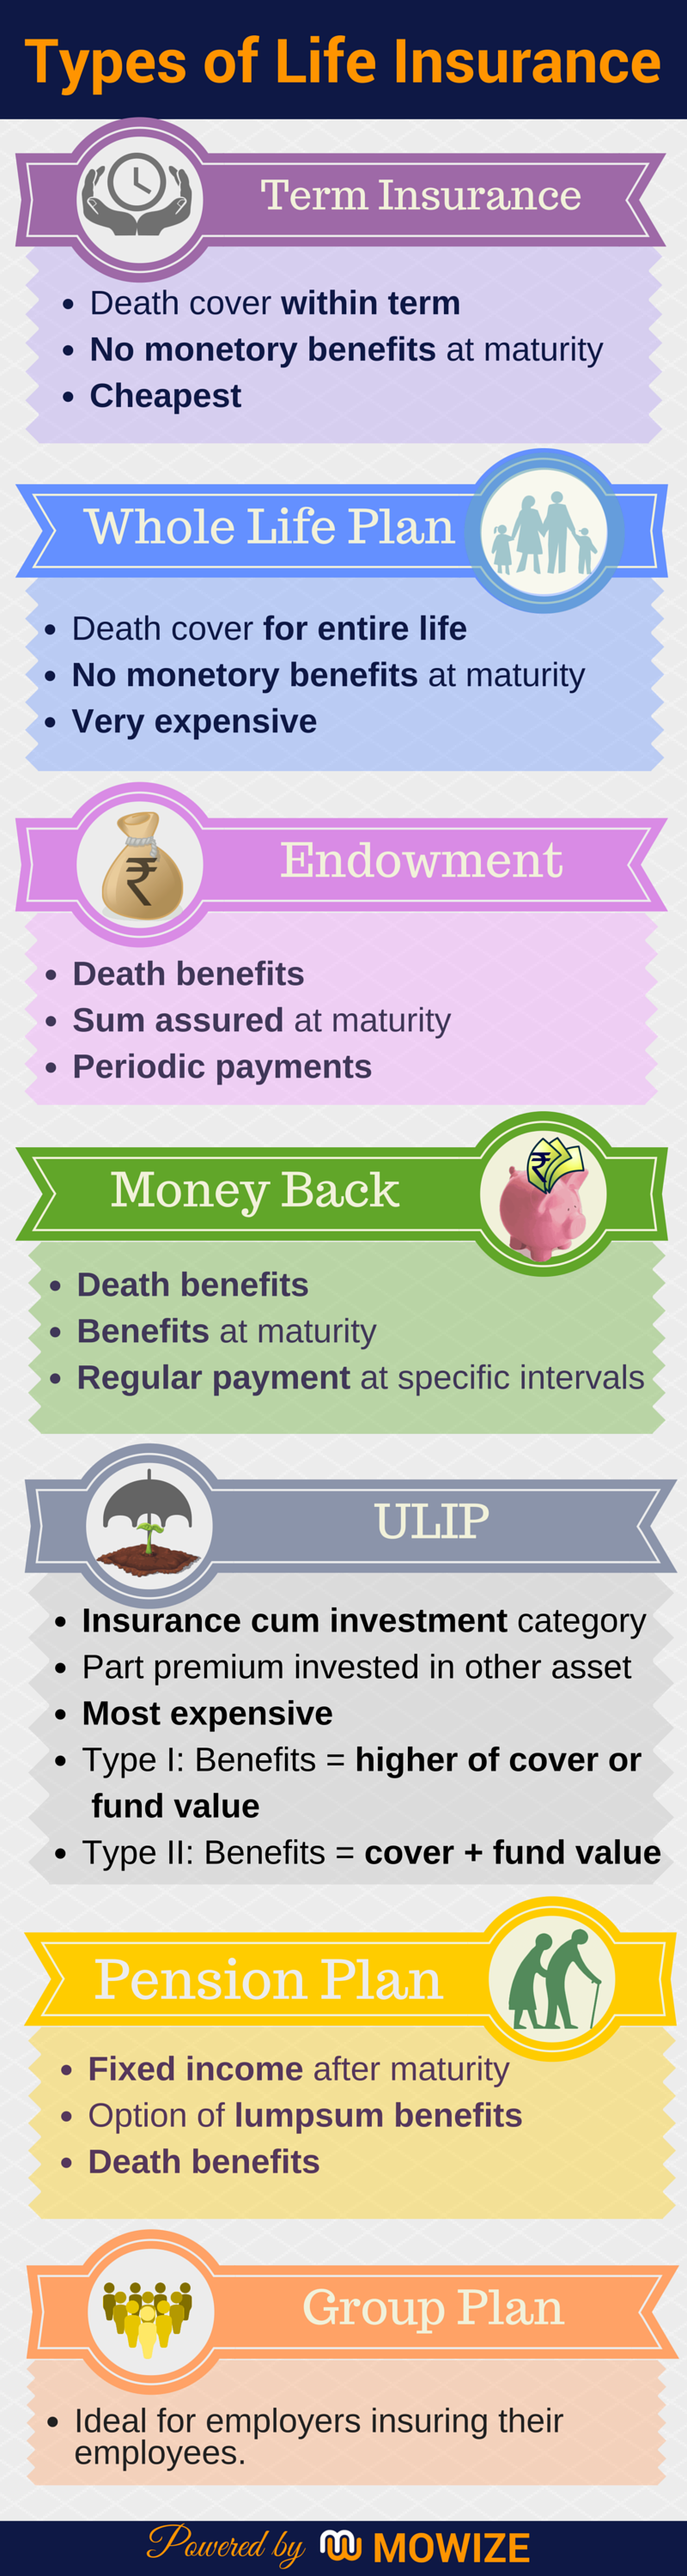 Types of Life Insurance (With images) Life insurance